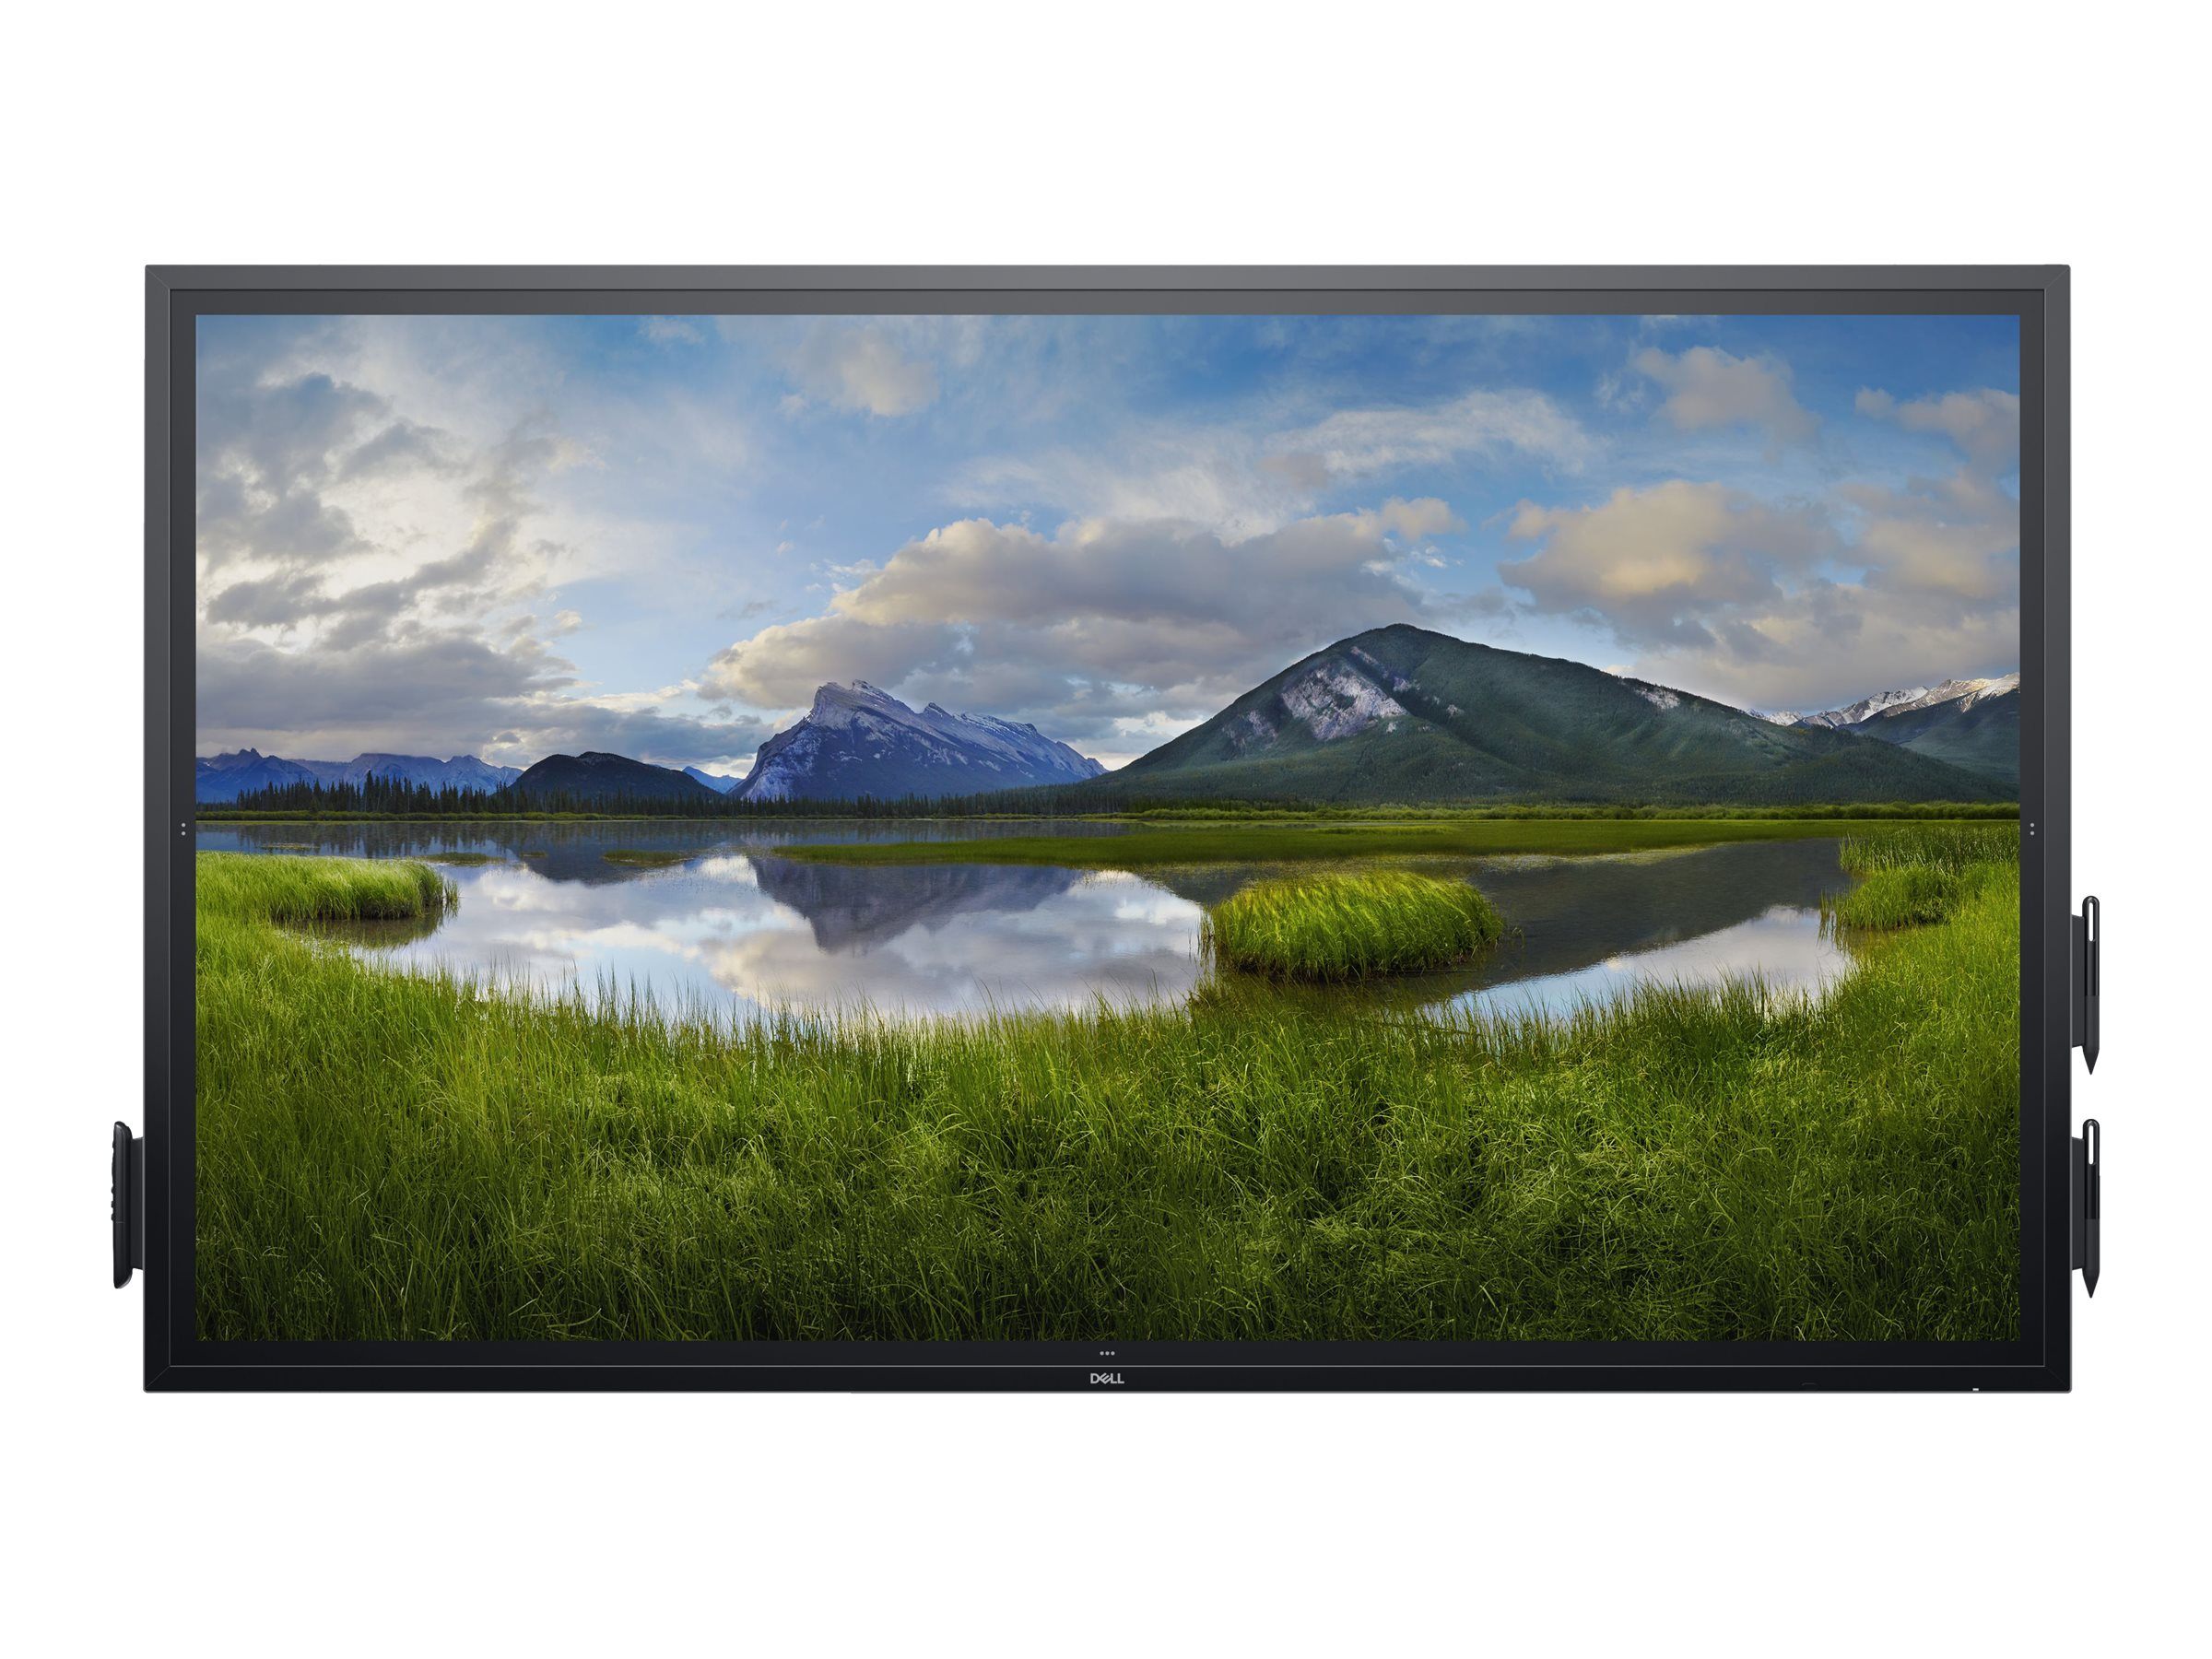 Dell Multitouch LED-Display C7520QT - 190.5 cm (75